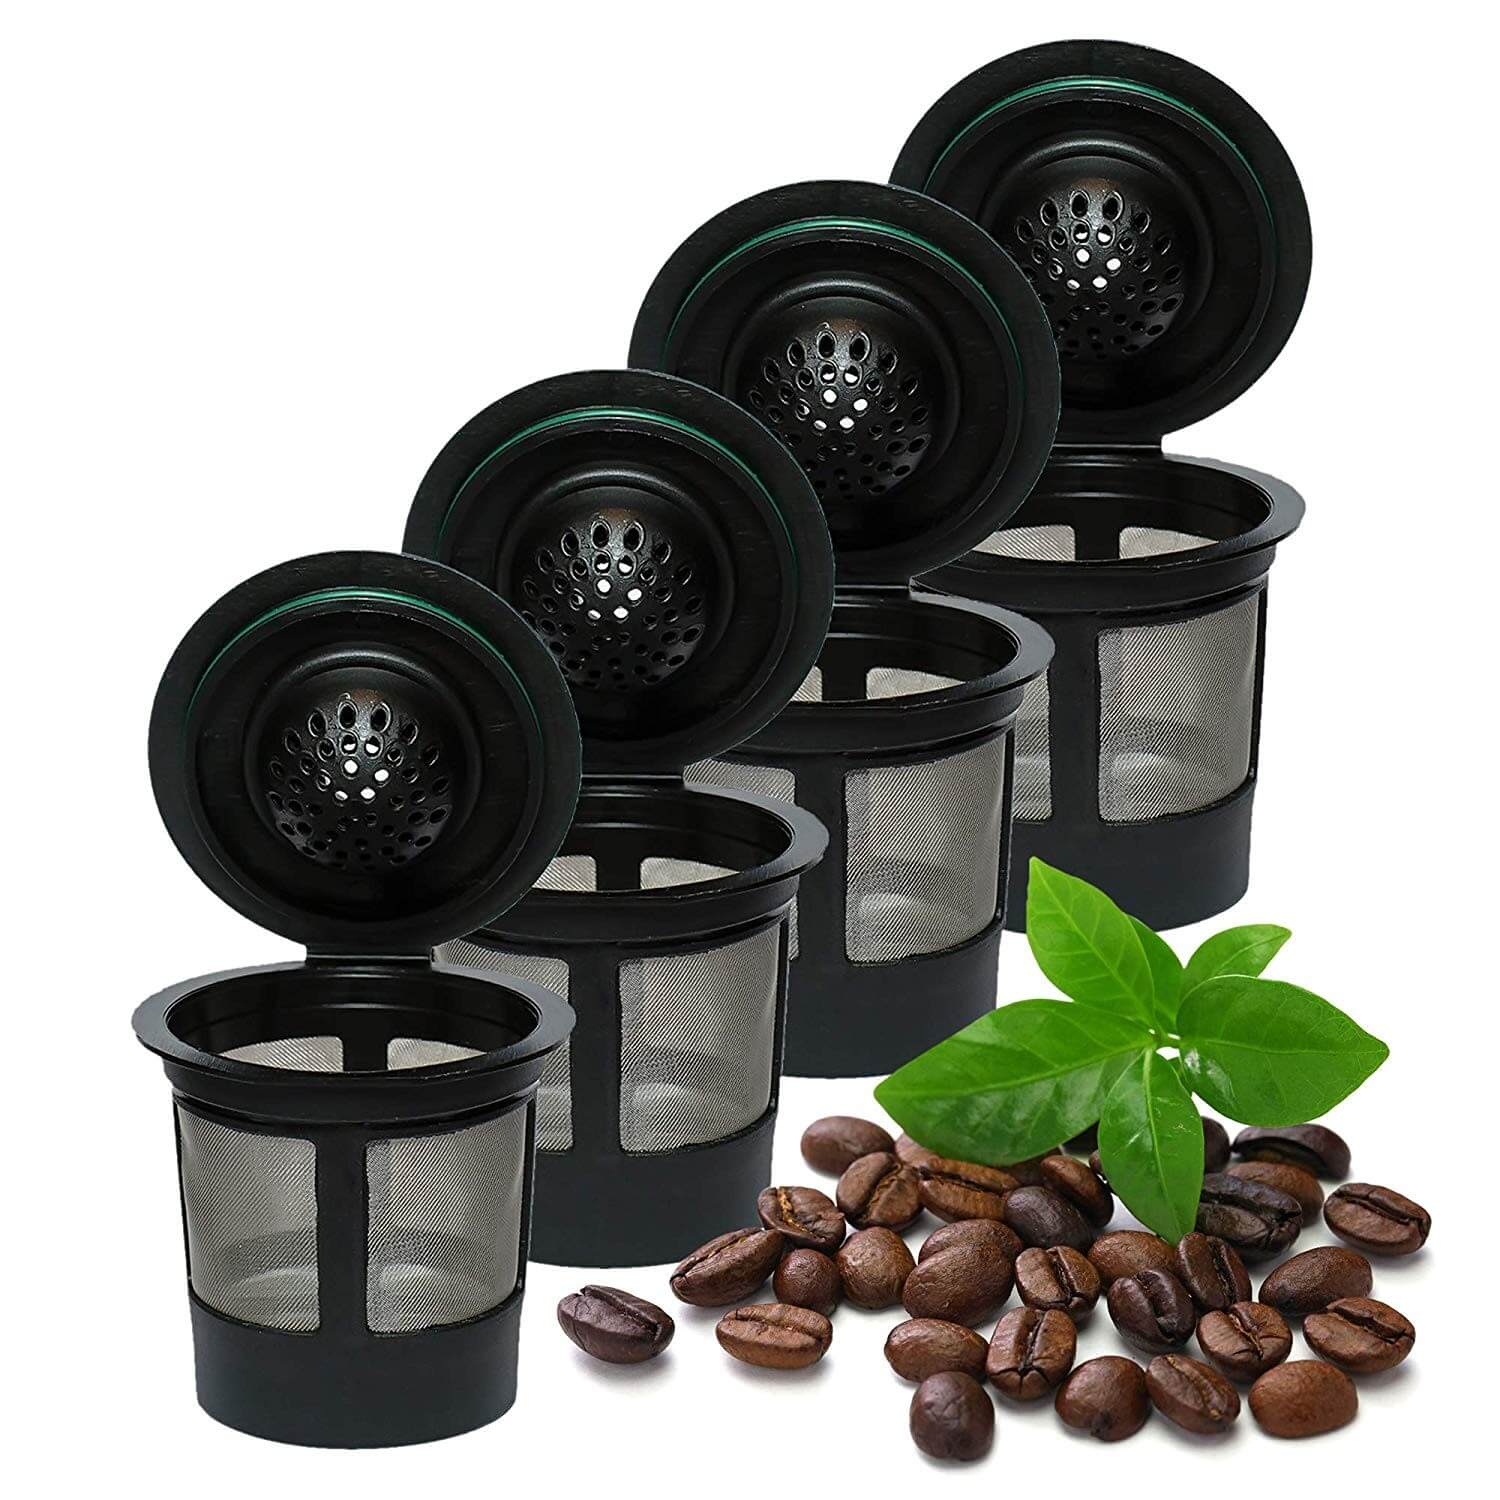 Reusable Keurig Pods